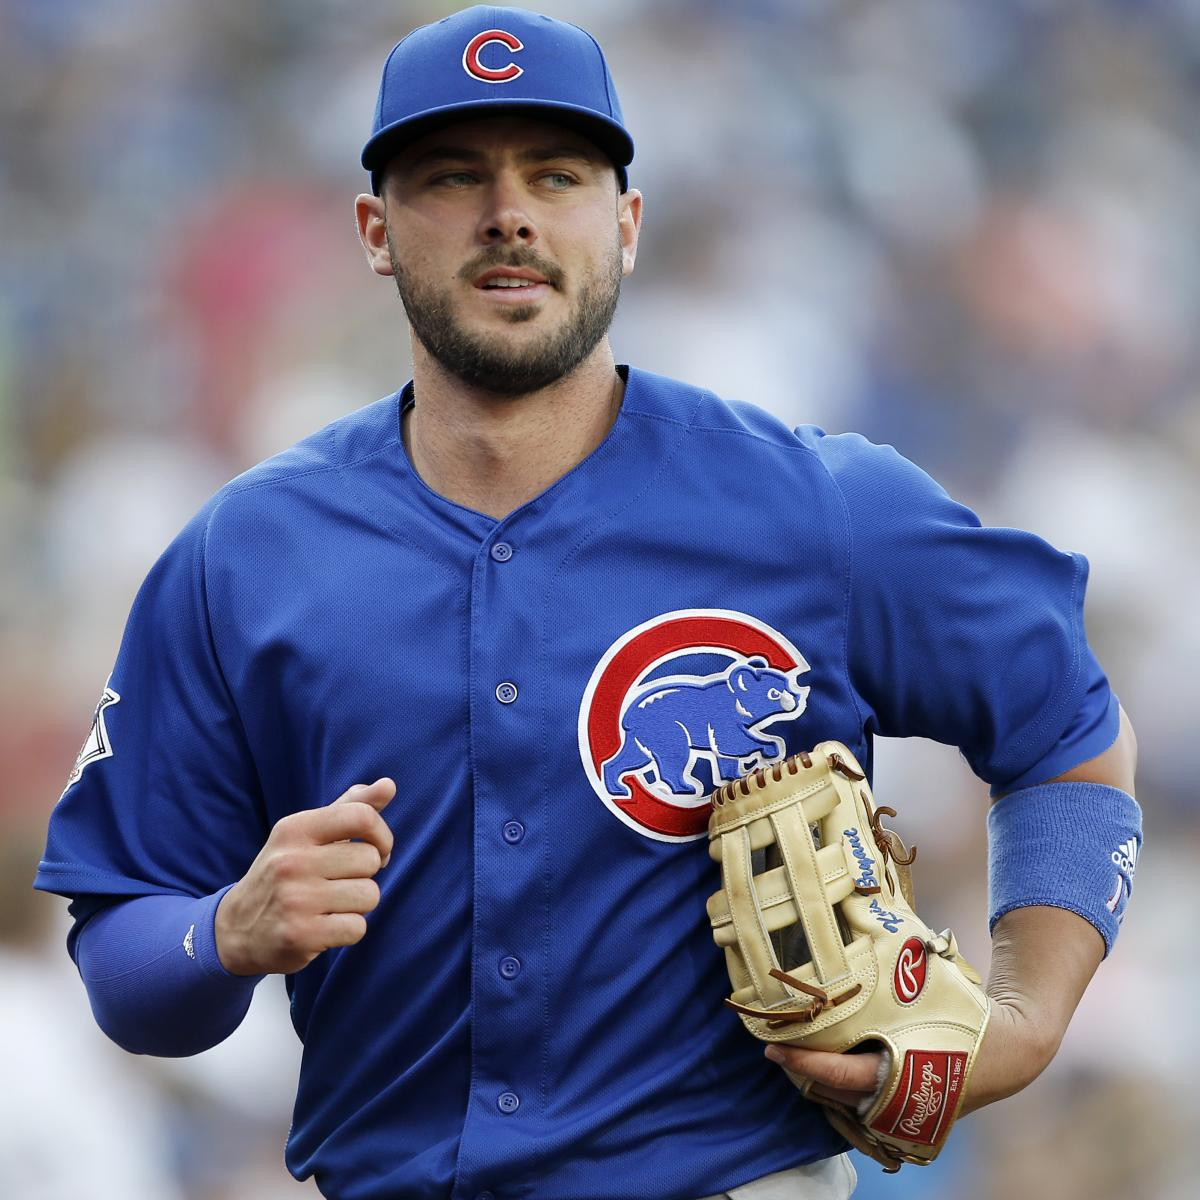 Kris Bryant Rumors: Cubs' Reported $200+M Contract Offer 'Simply Not True'